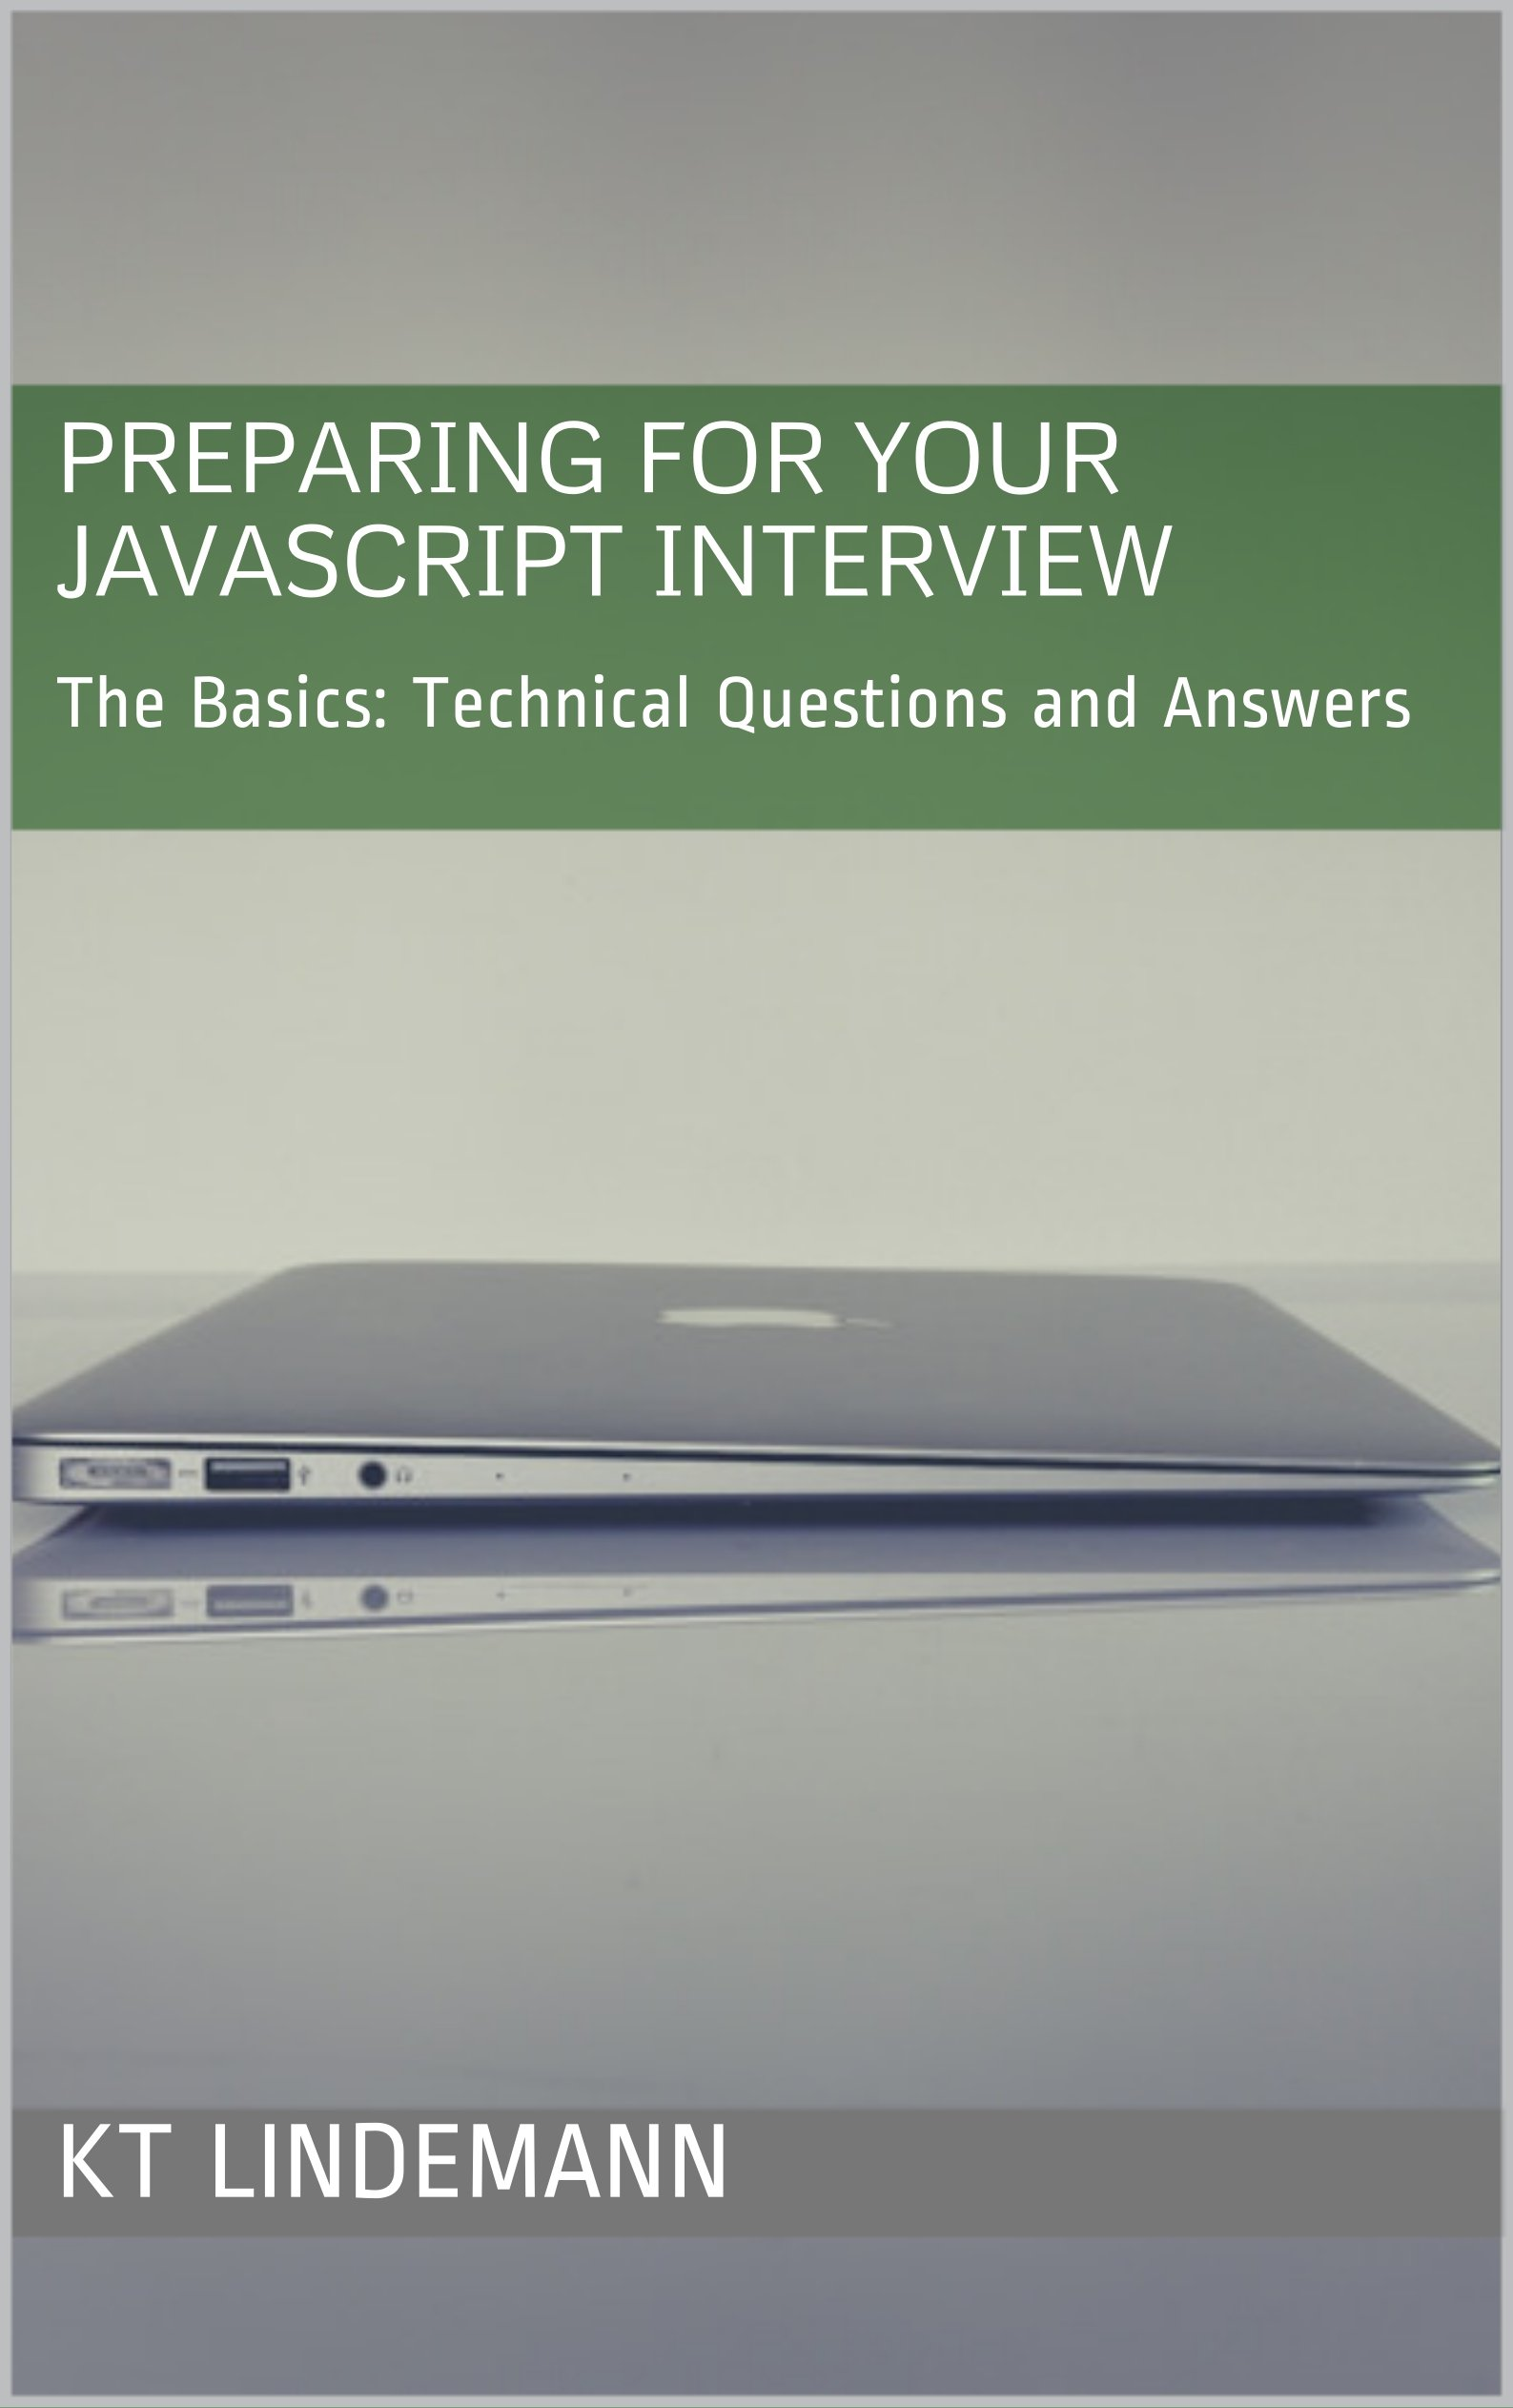 Preparing for Your JavaScript Interview: The Basics: Technical Questions and Answers (Your Technical Interview Book 1)